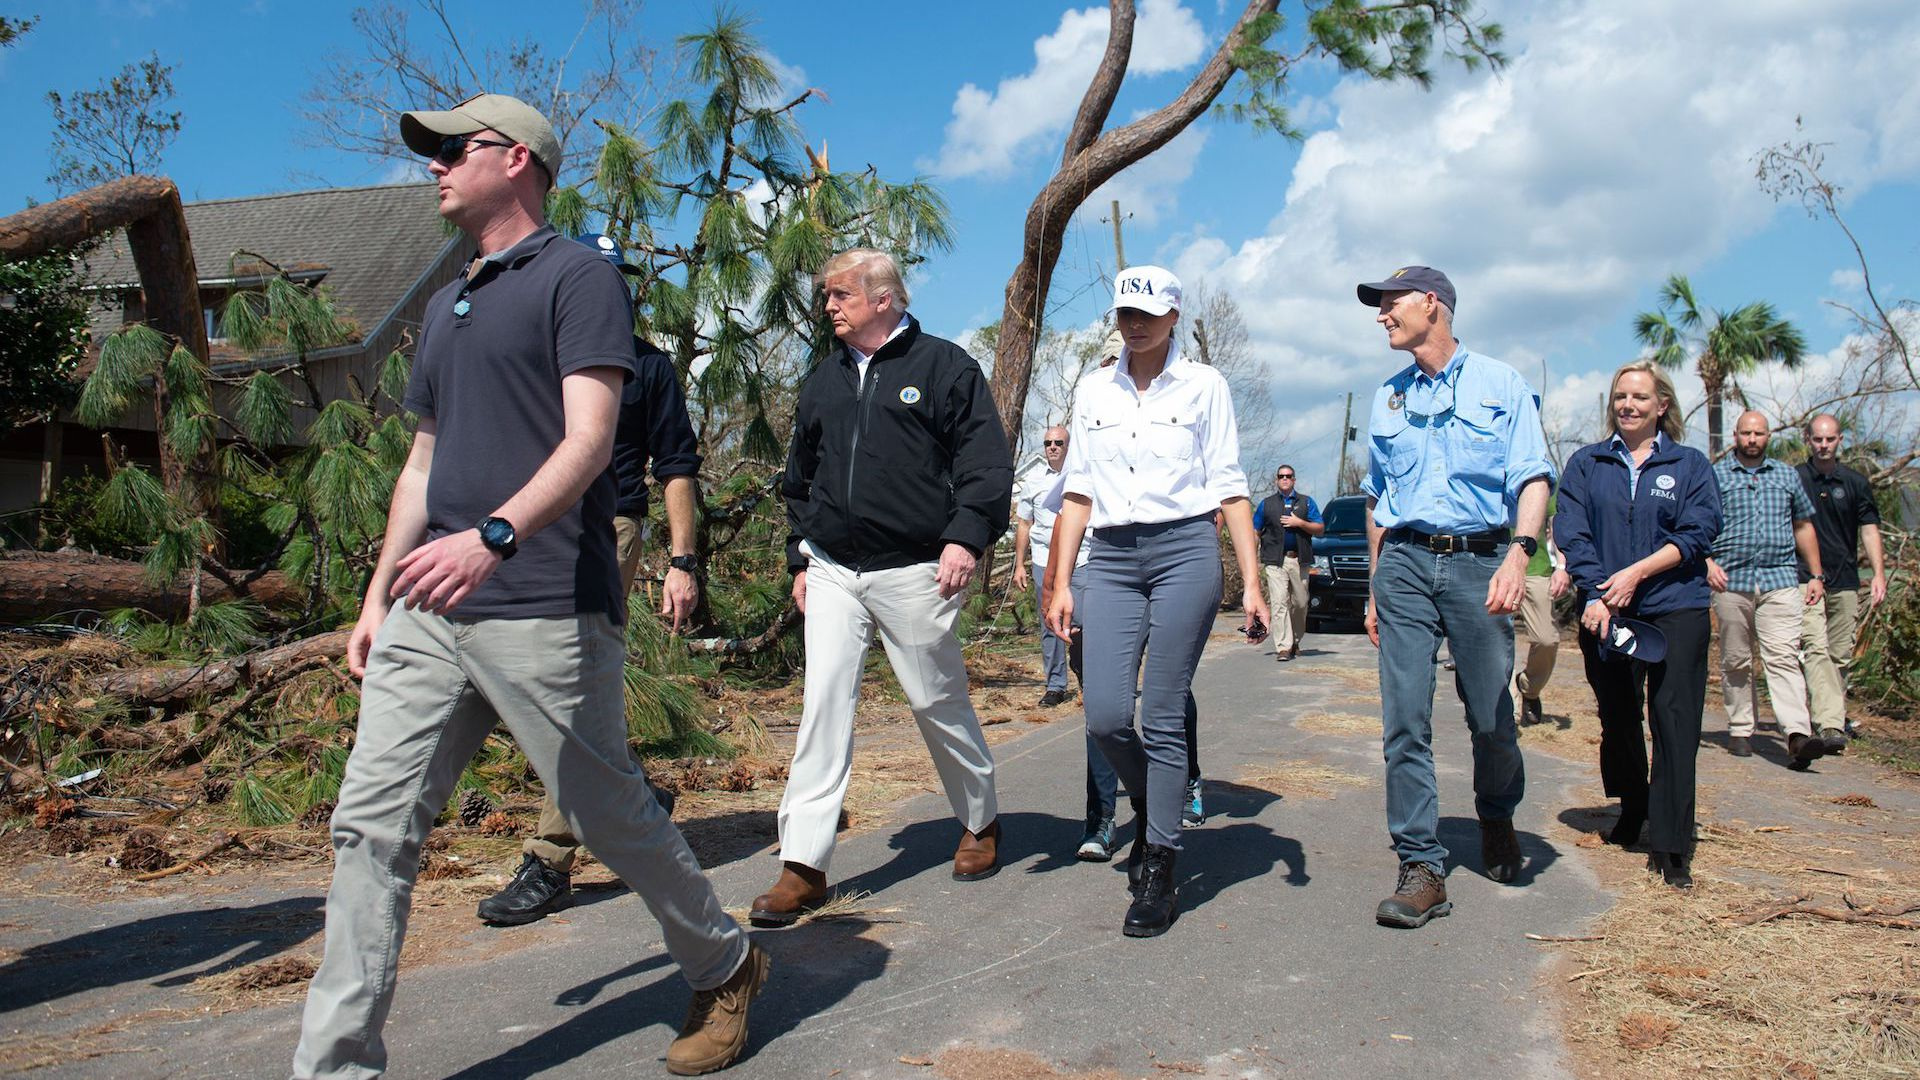 President Trump toured damage caused by Hurricane Michael on Oct. 15, 2018. Trump denied the storm was connected to climate change.